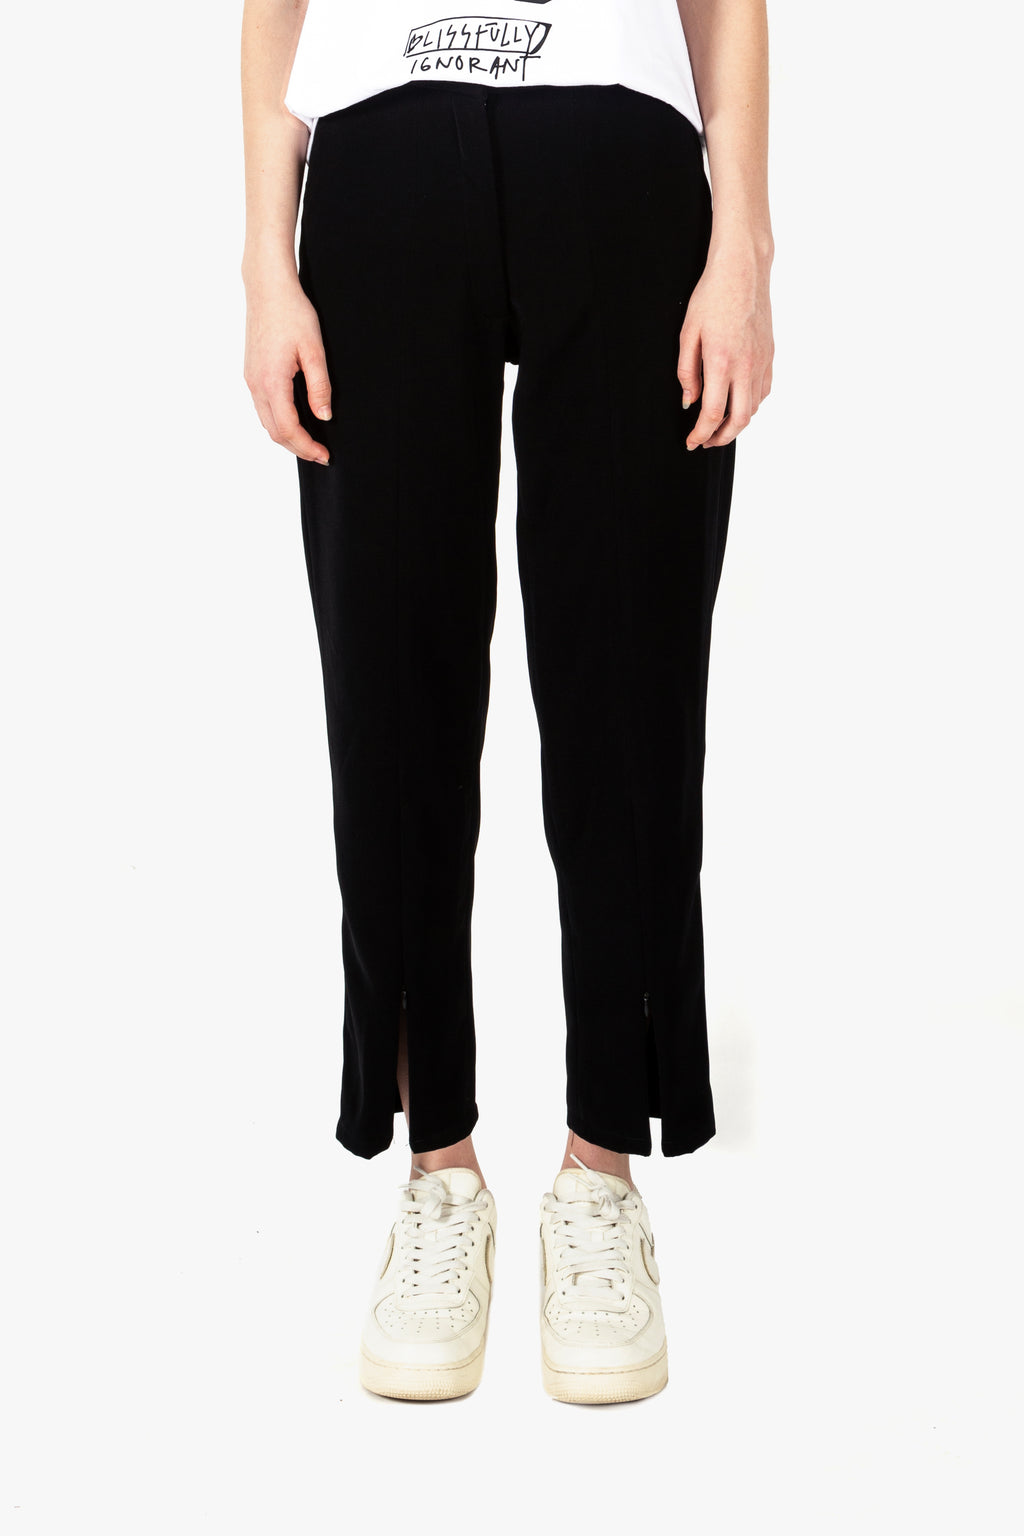 La Brea Trousers